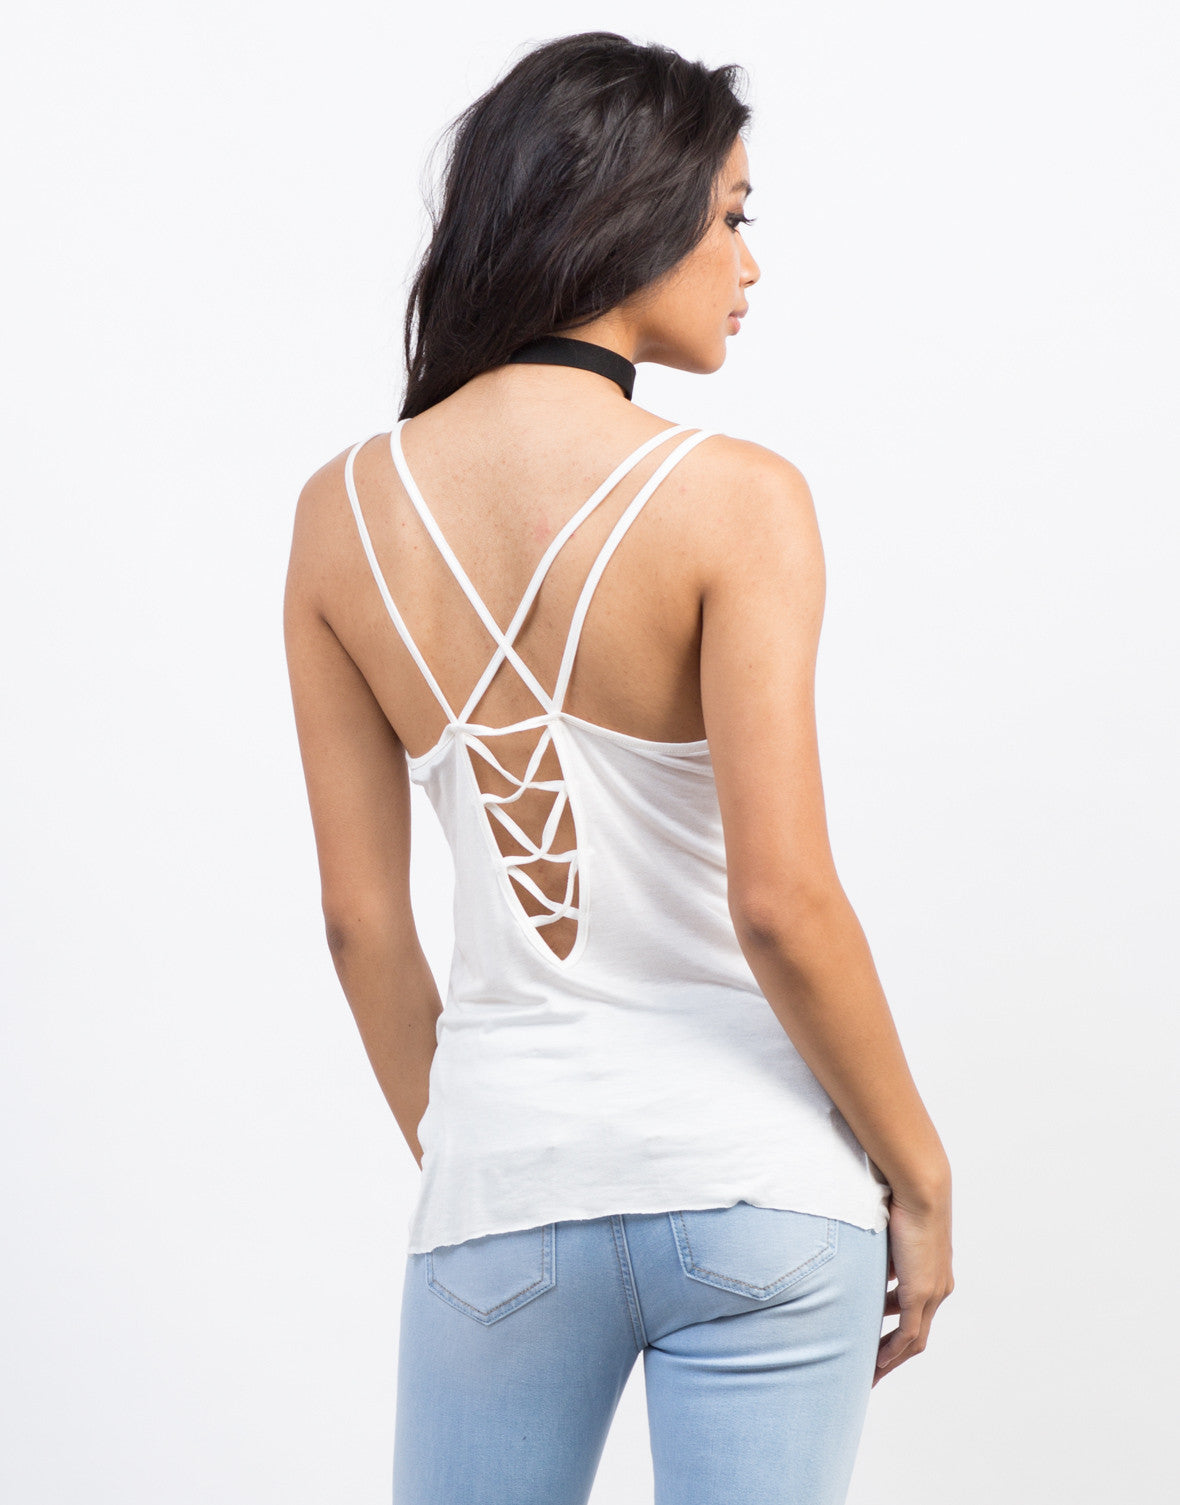 Back View of Comfy Cross Back Tank